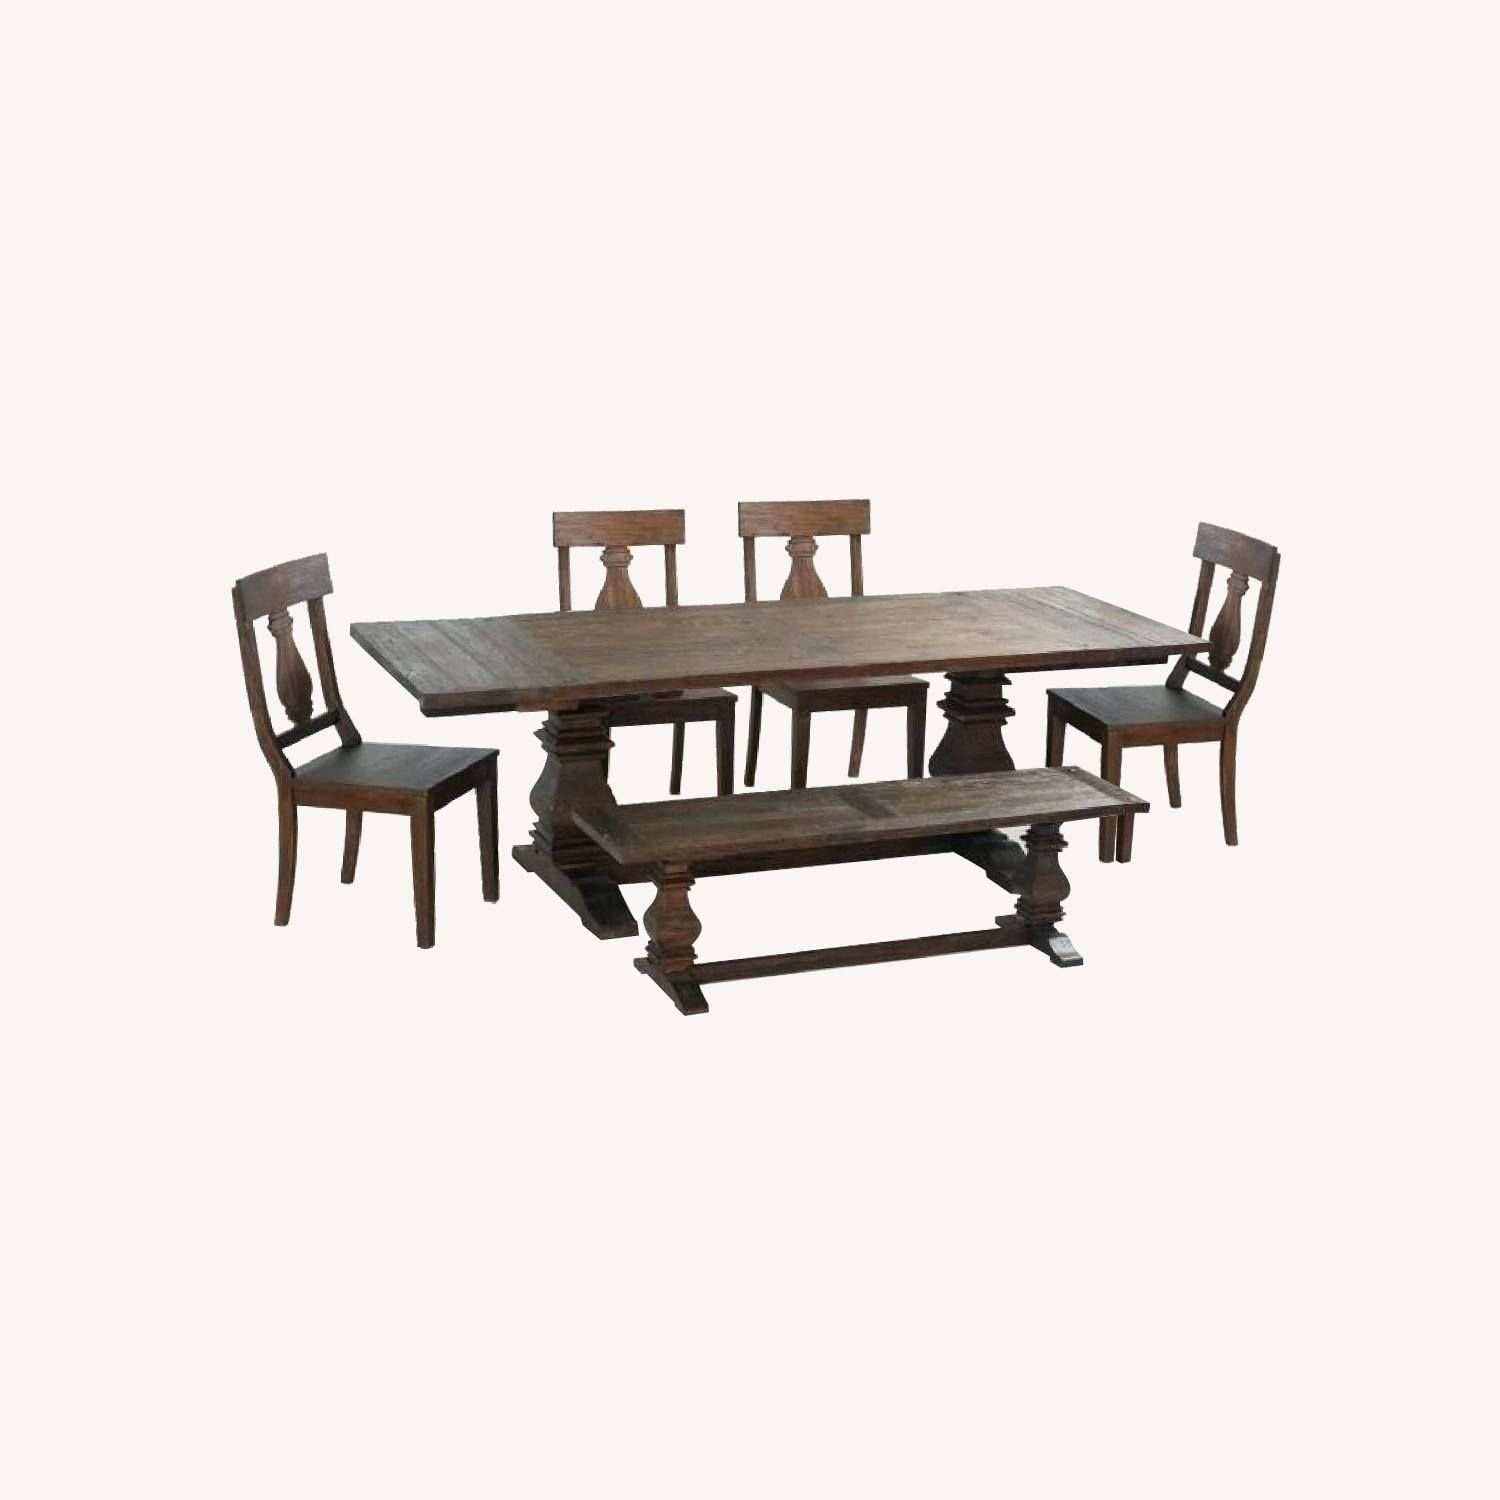 Tristan Wood Dining Table w/ 1 Bench & 4 Chairs - image-0